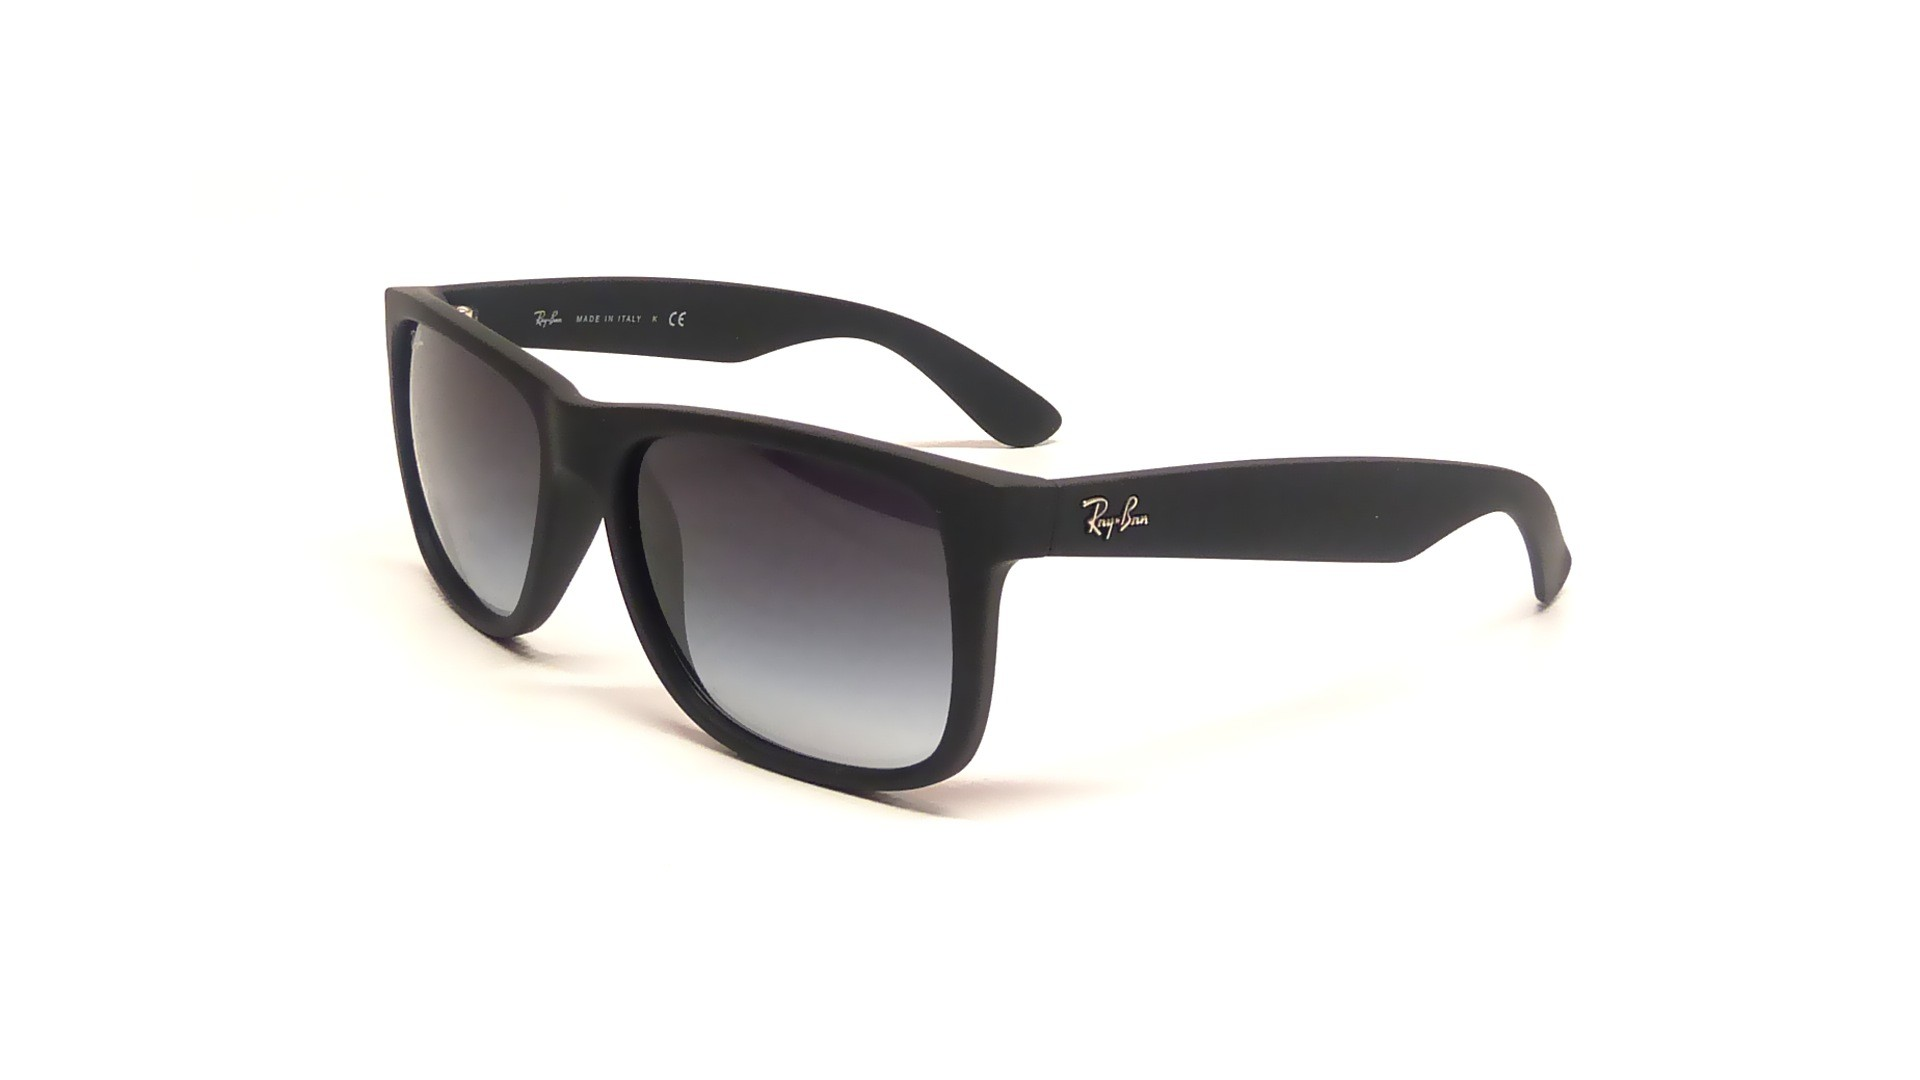 a64e5c8fcad Ray Ban Justin Rb4165 601 8g « Heritage Malta